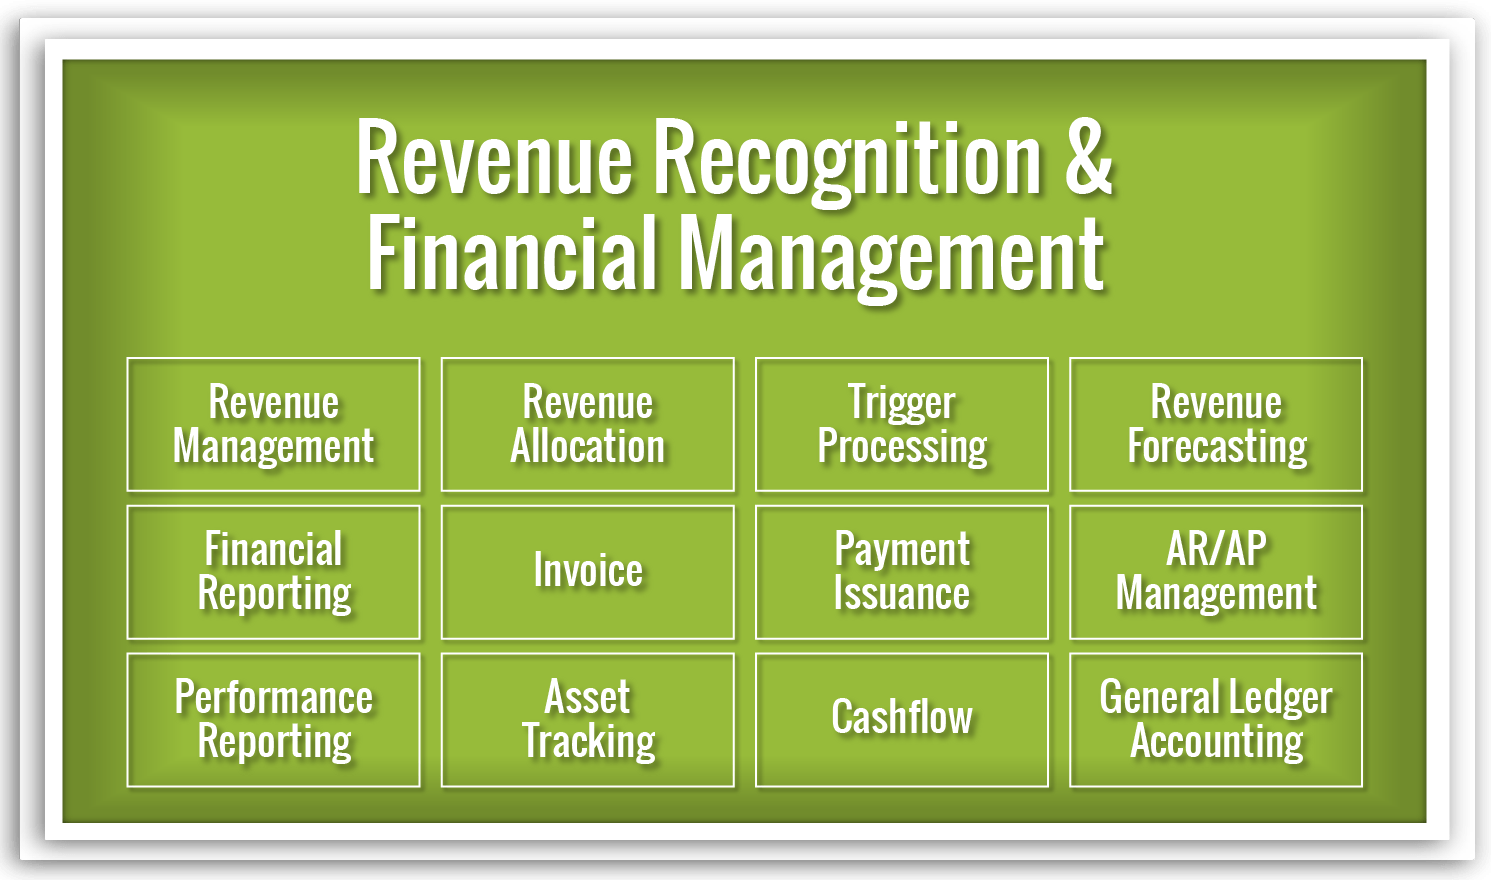 Revenue Recognition & Financial Management – ATG – Advanced